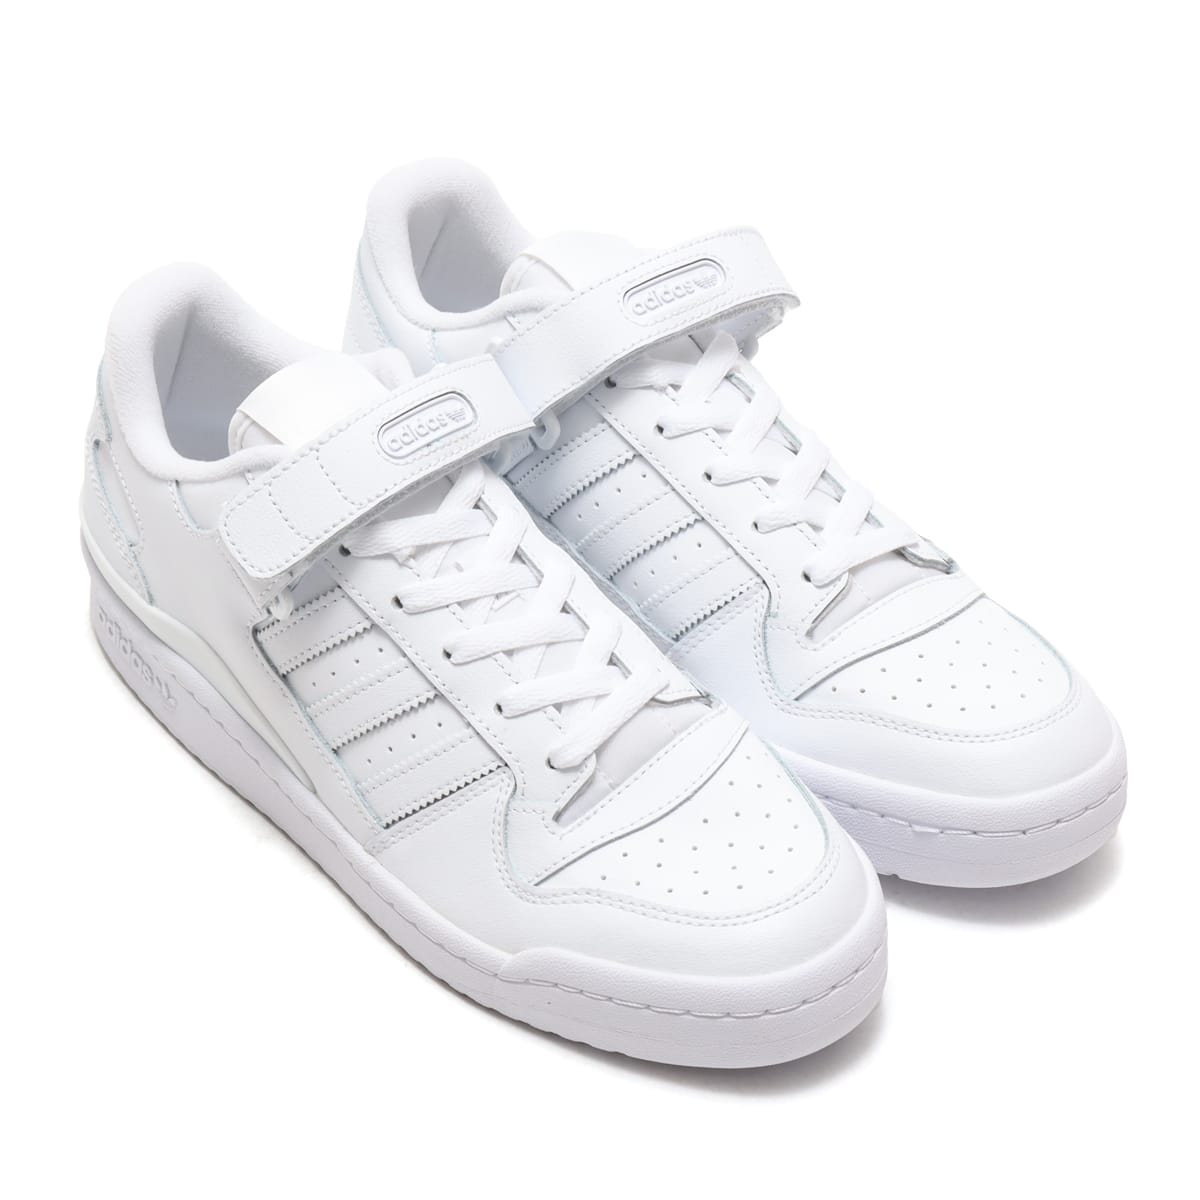 adidas FORUM LOW FOOTWEAR WHITE/FOOTWEAR WHITE/FOOTWEAR WHITE 21SS-I_photo_large